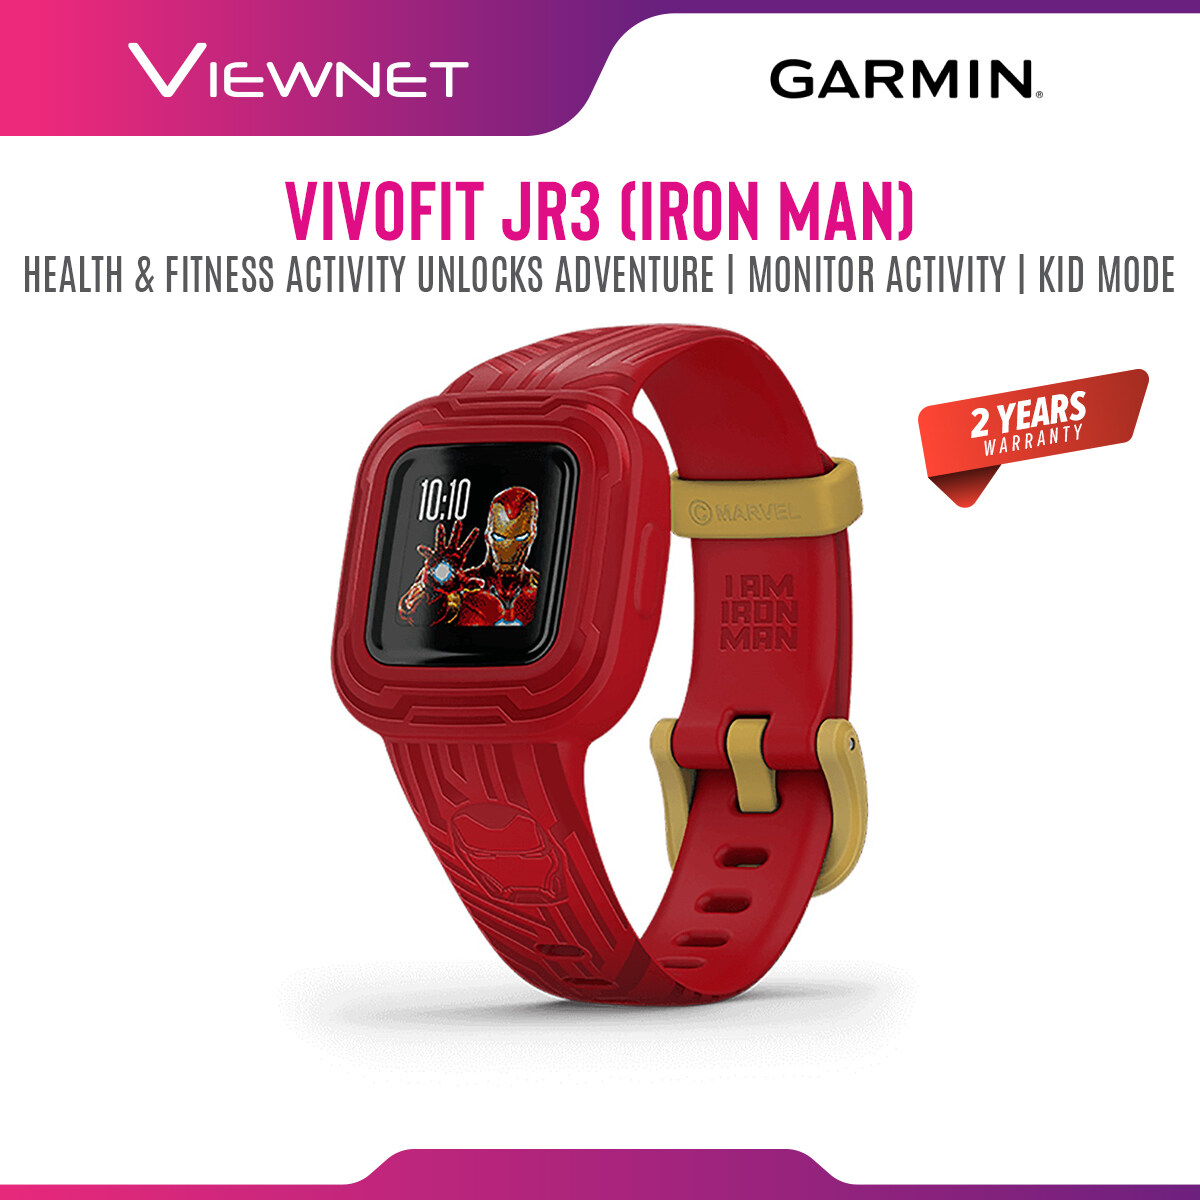 Garmin Vivofit jr. 3 HEALTH & FITNESS ACTIVITY UNLOCKS ADVENTURE, MONITOR ACTIVITY, KID MODE, 2 YEARS WARRANTY